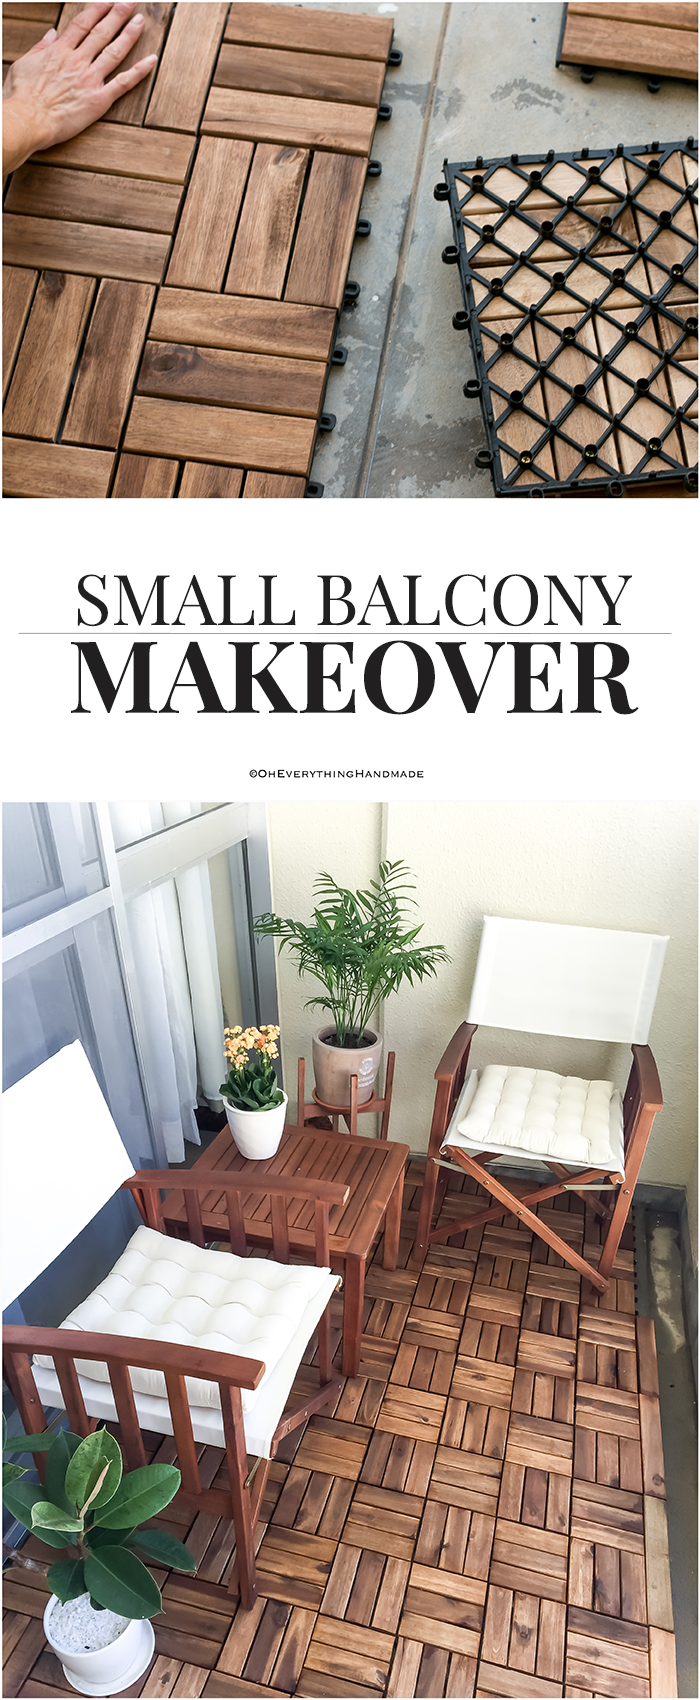 Small balcony makeover - PIN_IT- via OEH